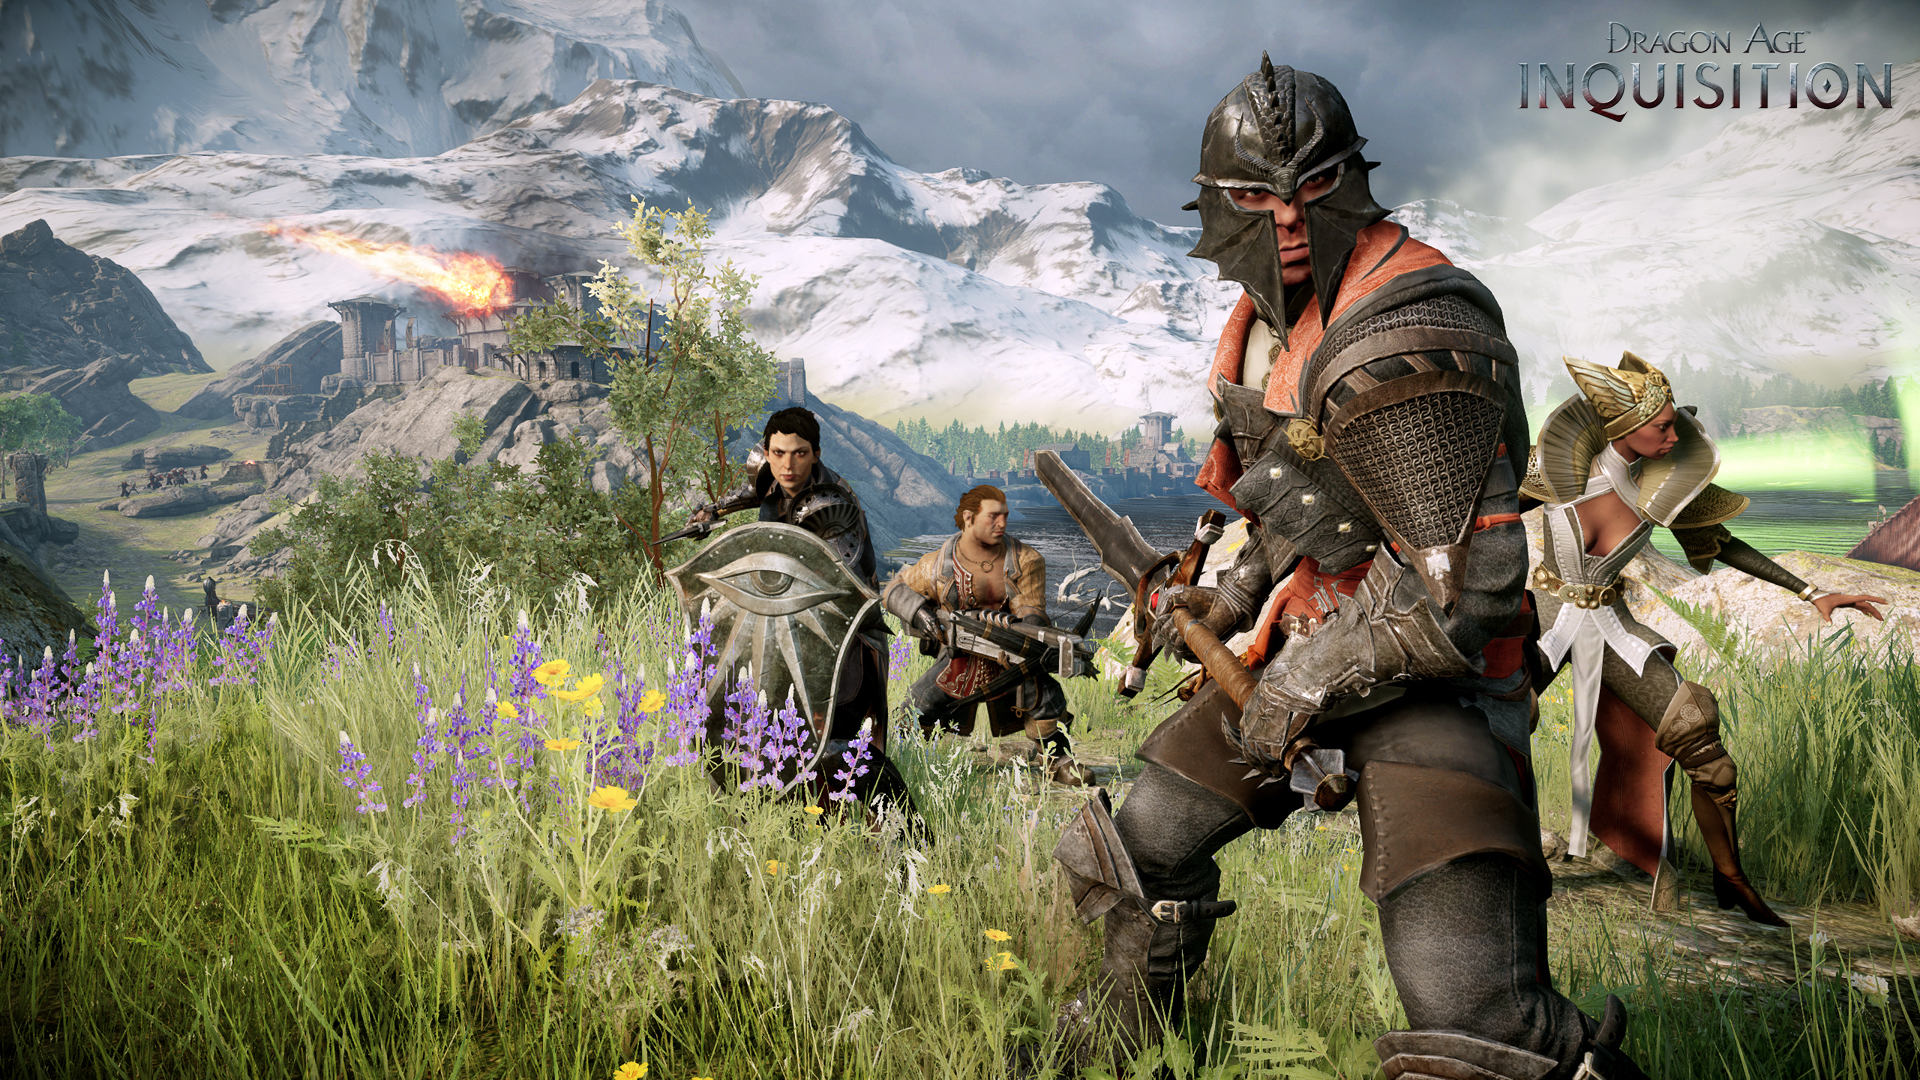 Dragon Age Inquisition Characters Leak How Dragon Age Inquisition